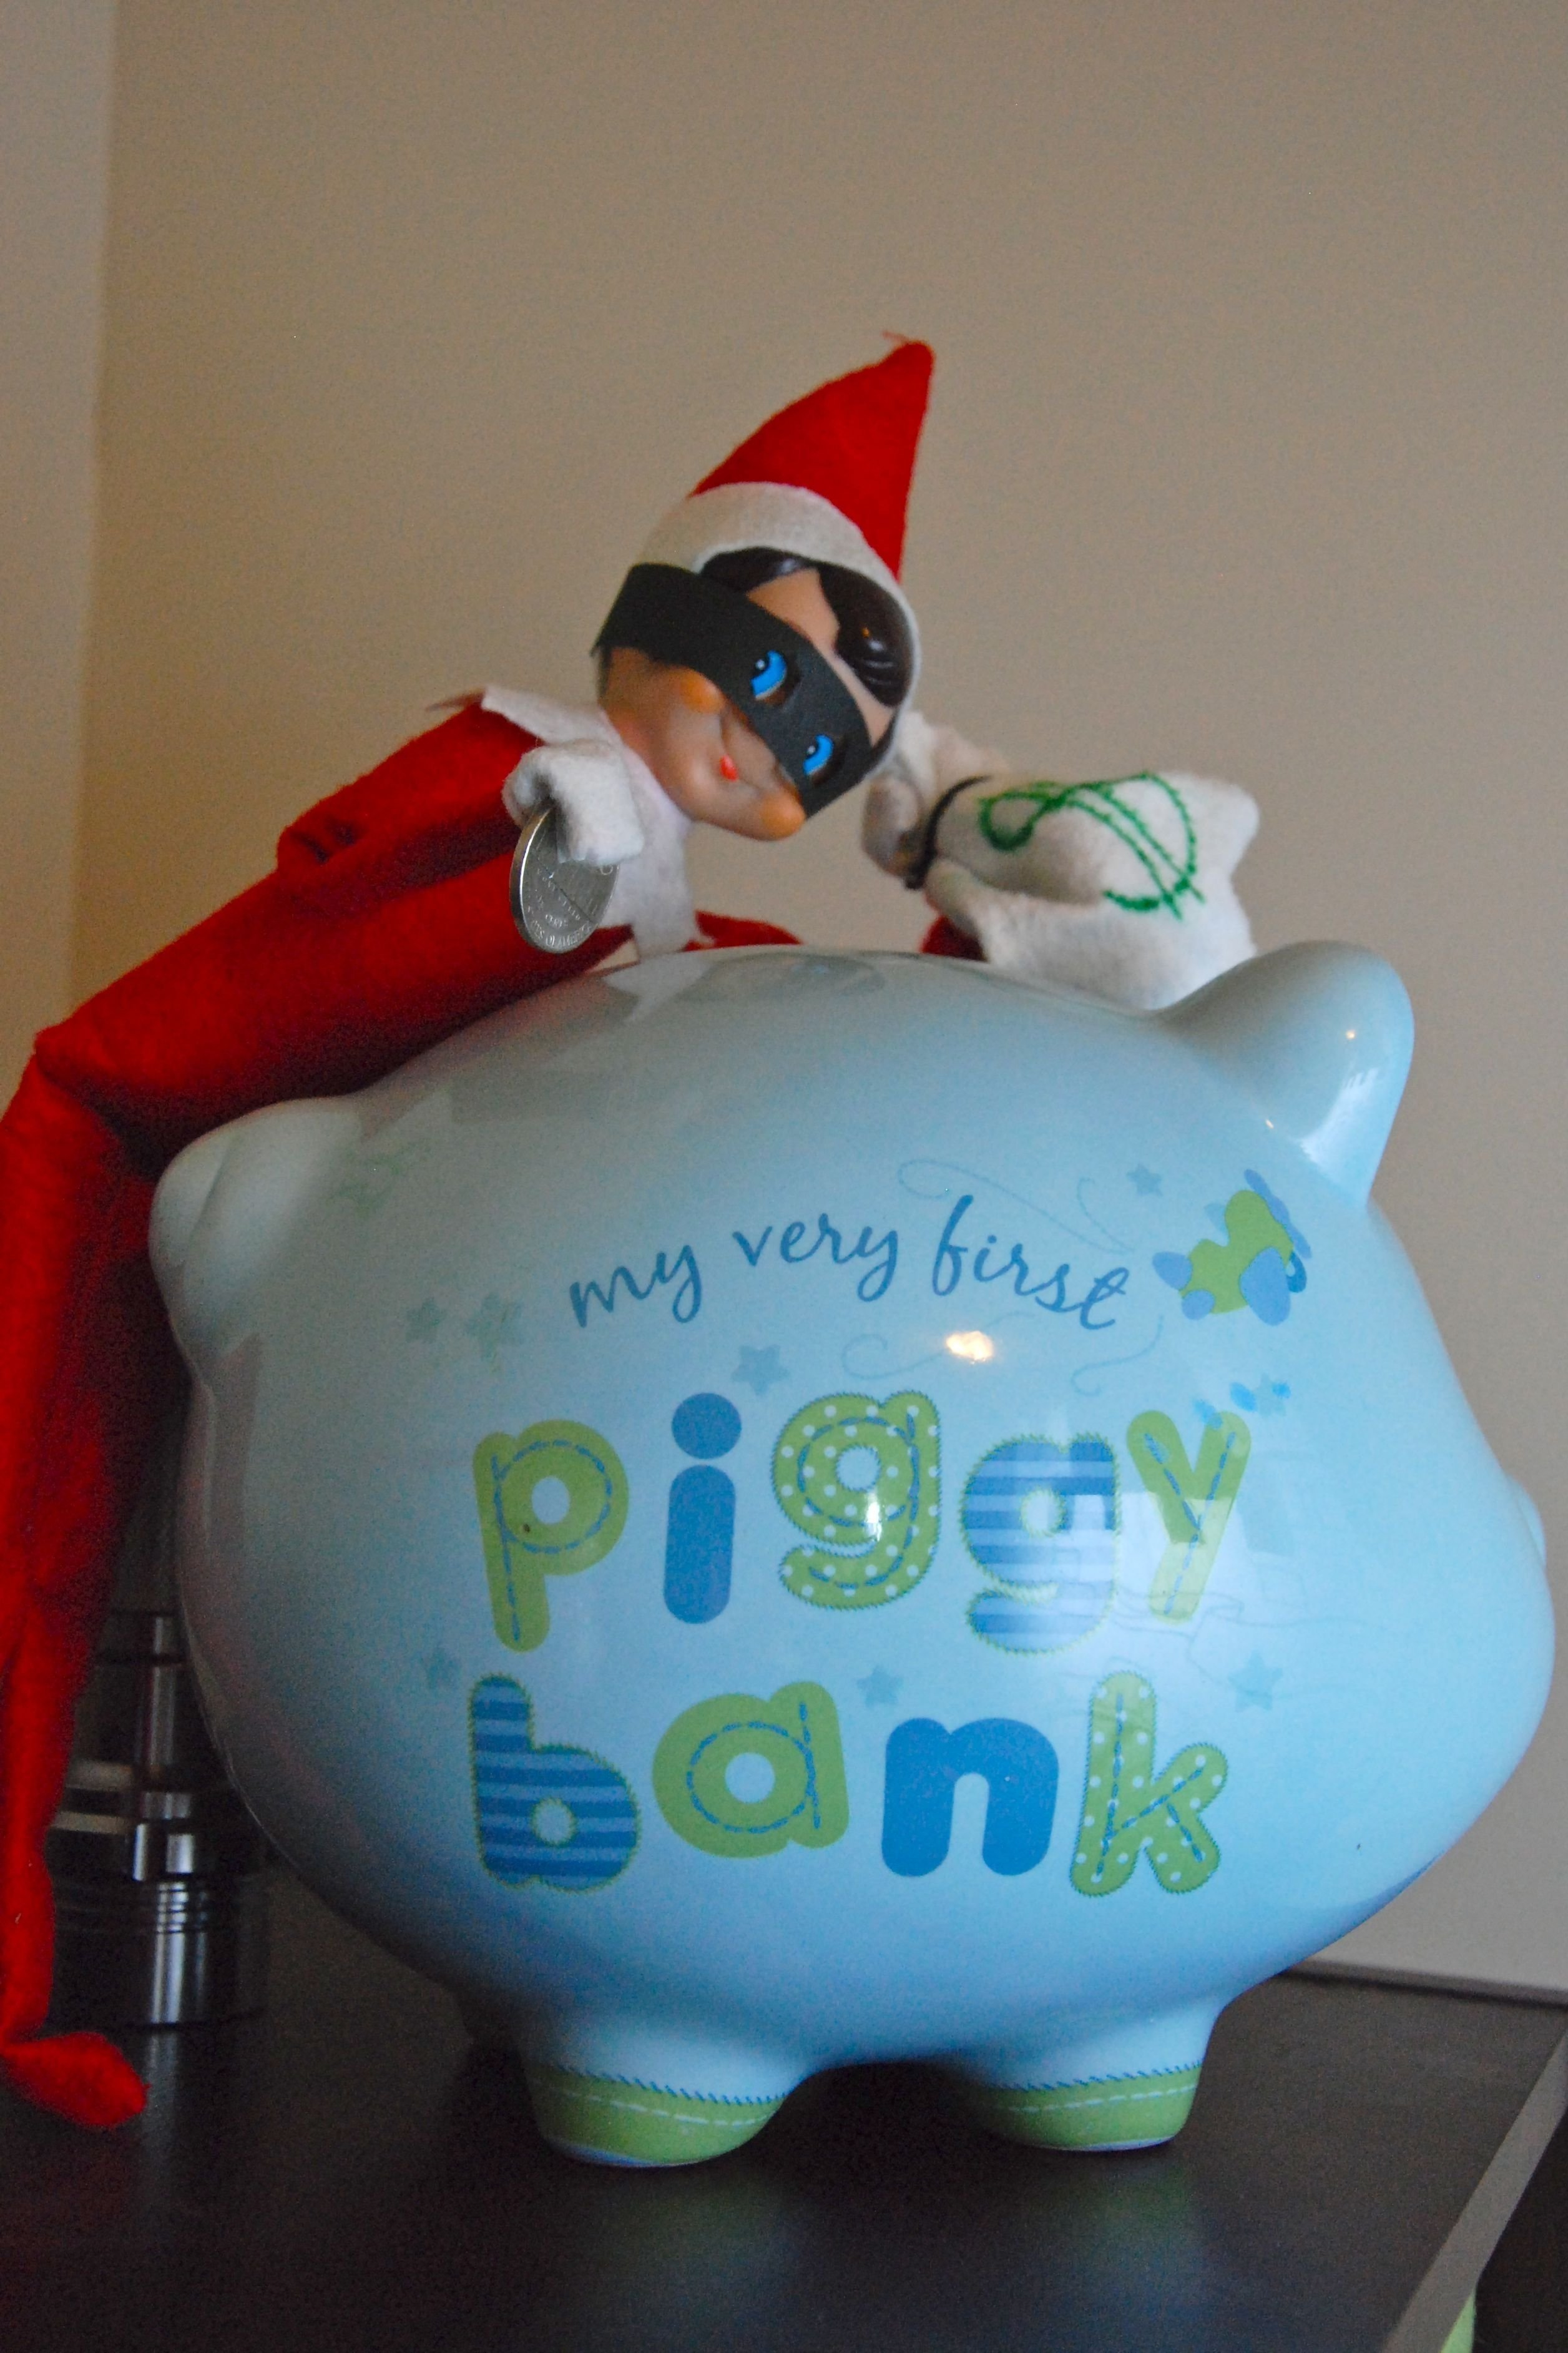 10 Most Popular Ideas For Elf On The Shelf Pranks elf on the shelf ideas elf on the shelf ideas week 2 dirty 1